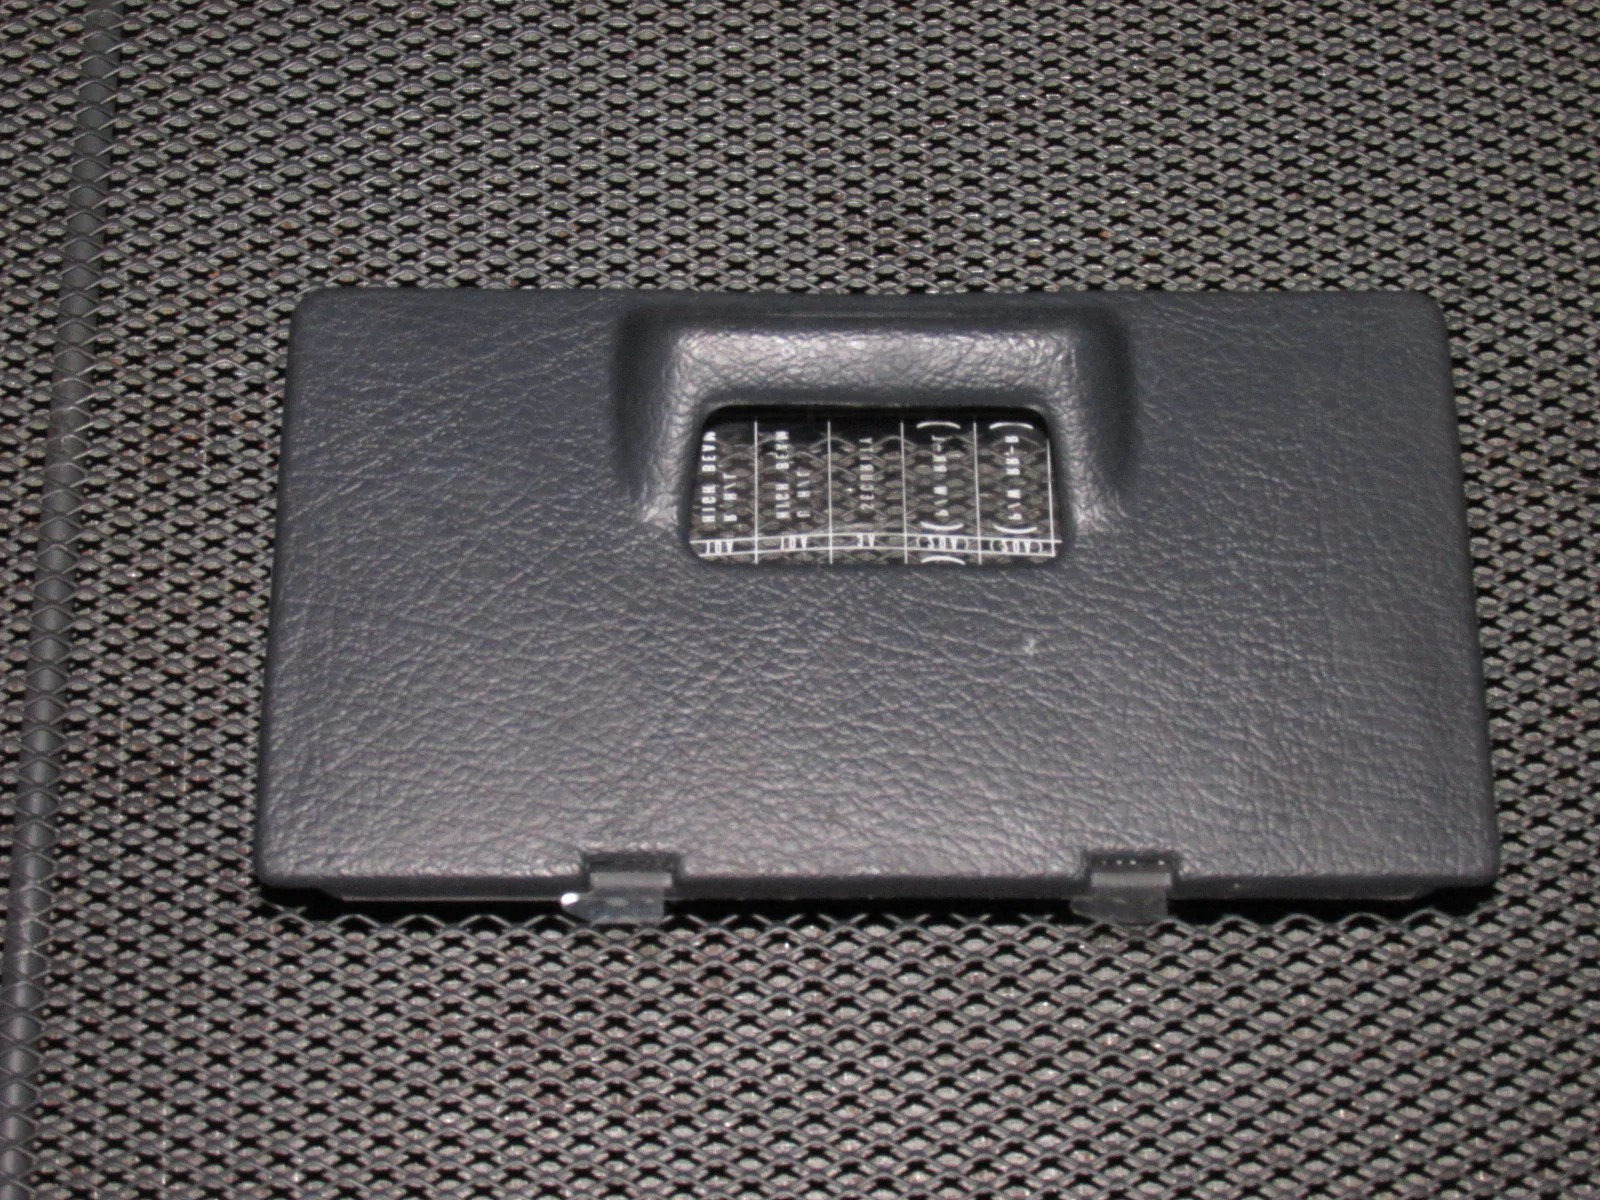 96 97 98 99 00 honda civic oem interior fuse box cover [ 1600 x 1200 Pixel ]